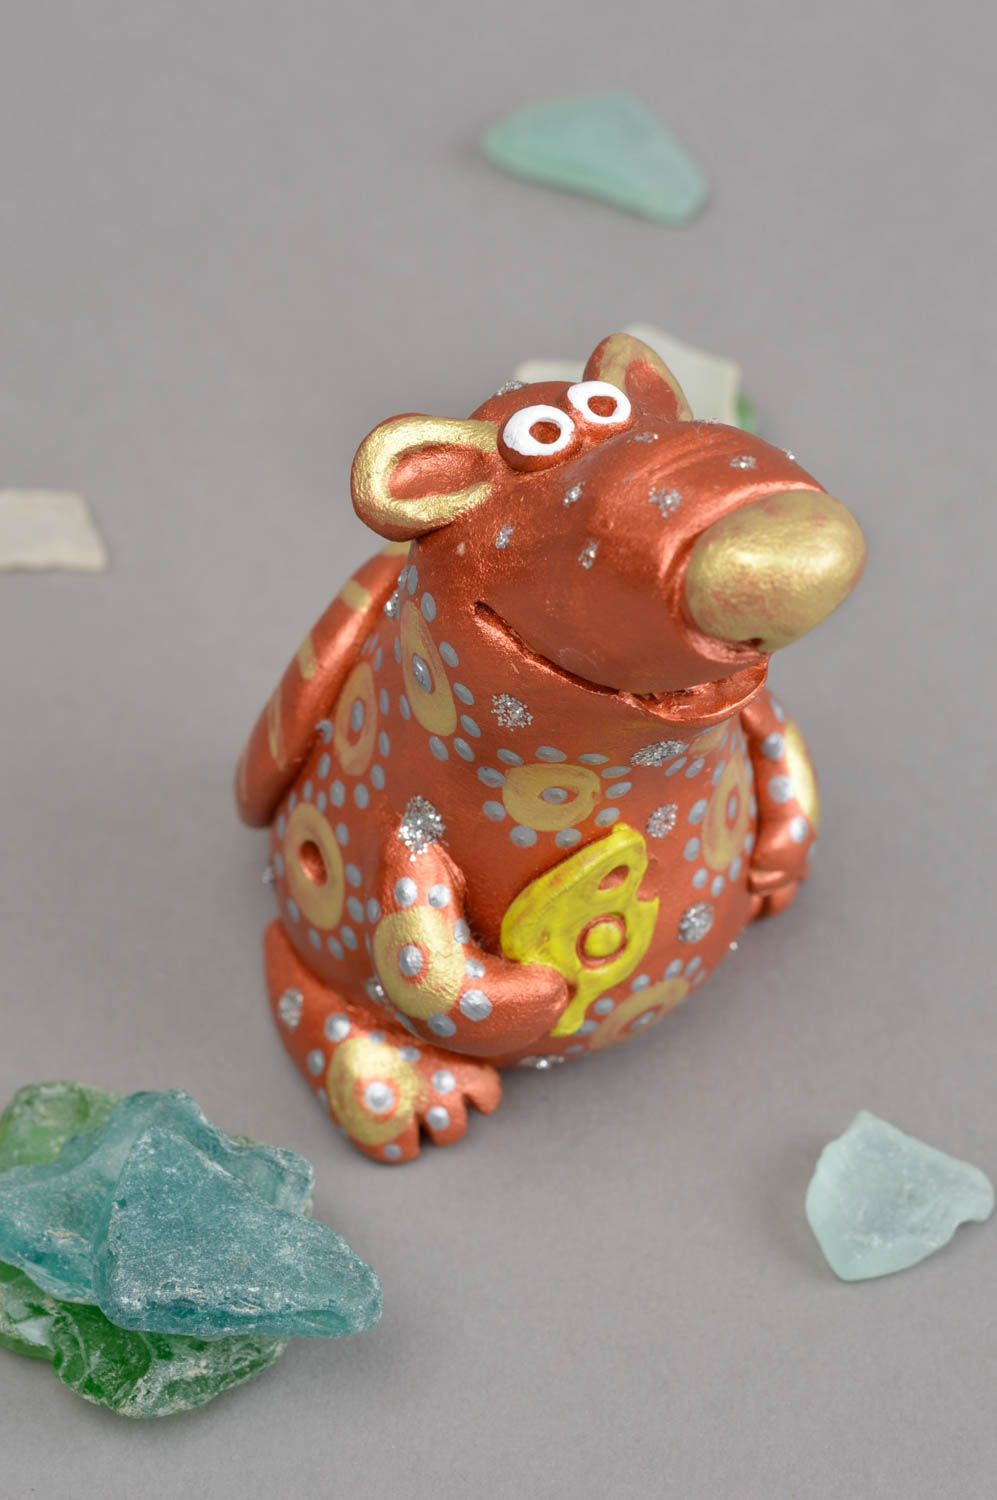 Clay whistle handmade ceramic figurine present for children clay animal whistle photo 1